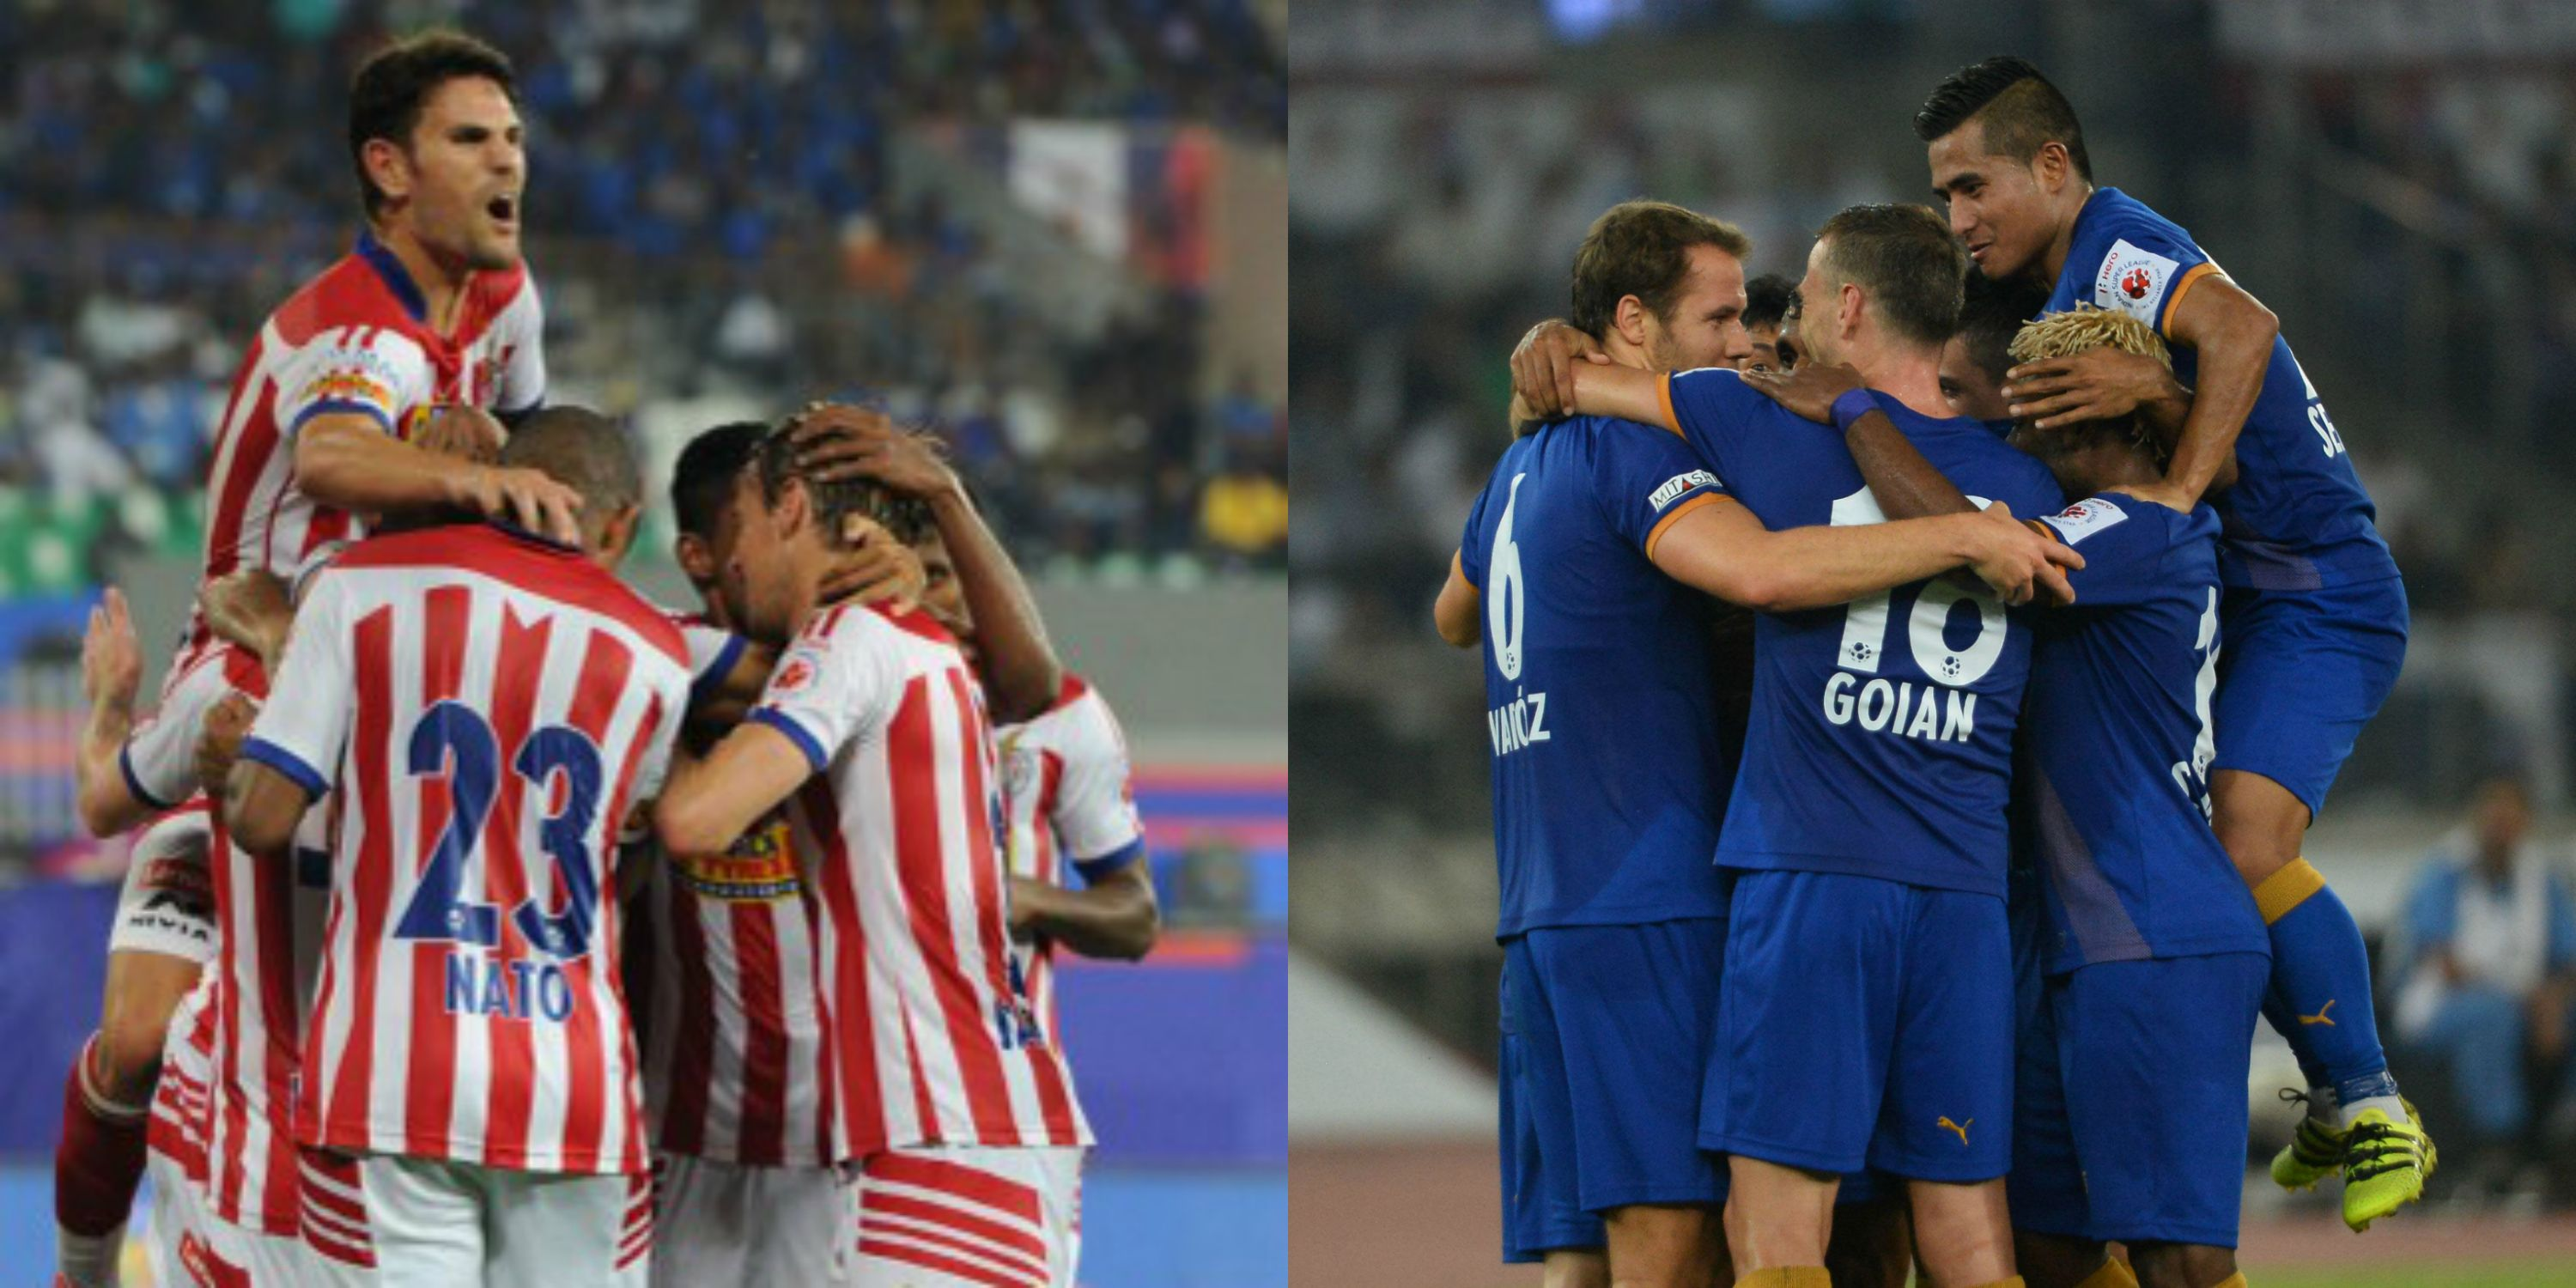 Gear up for another thrilling match between ATK and